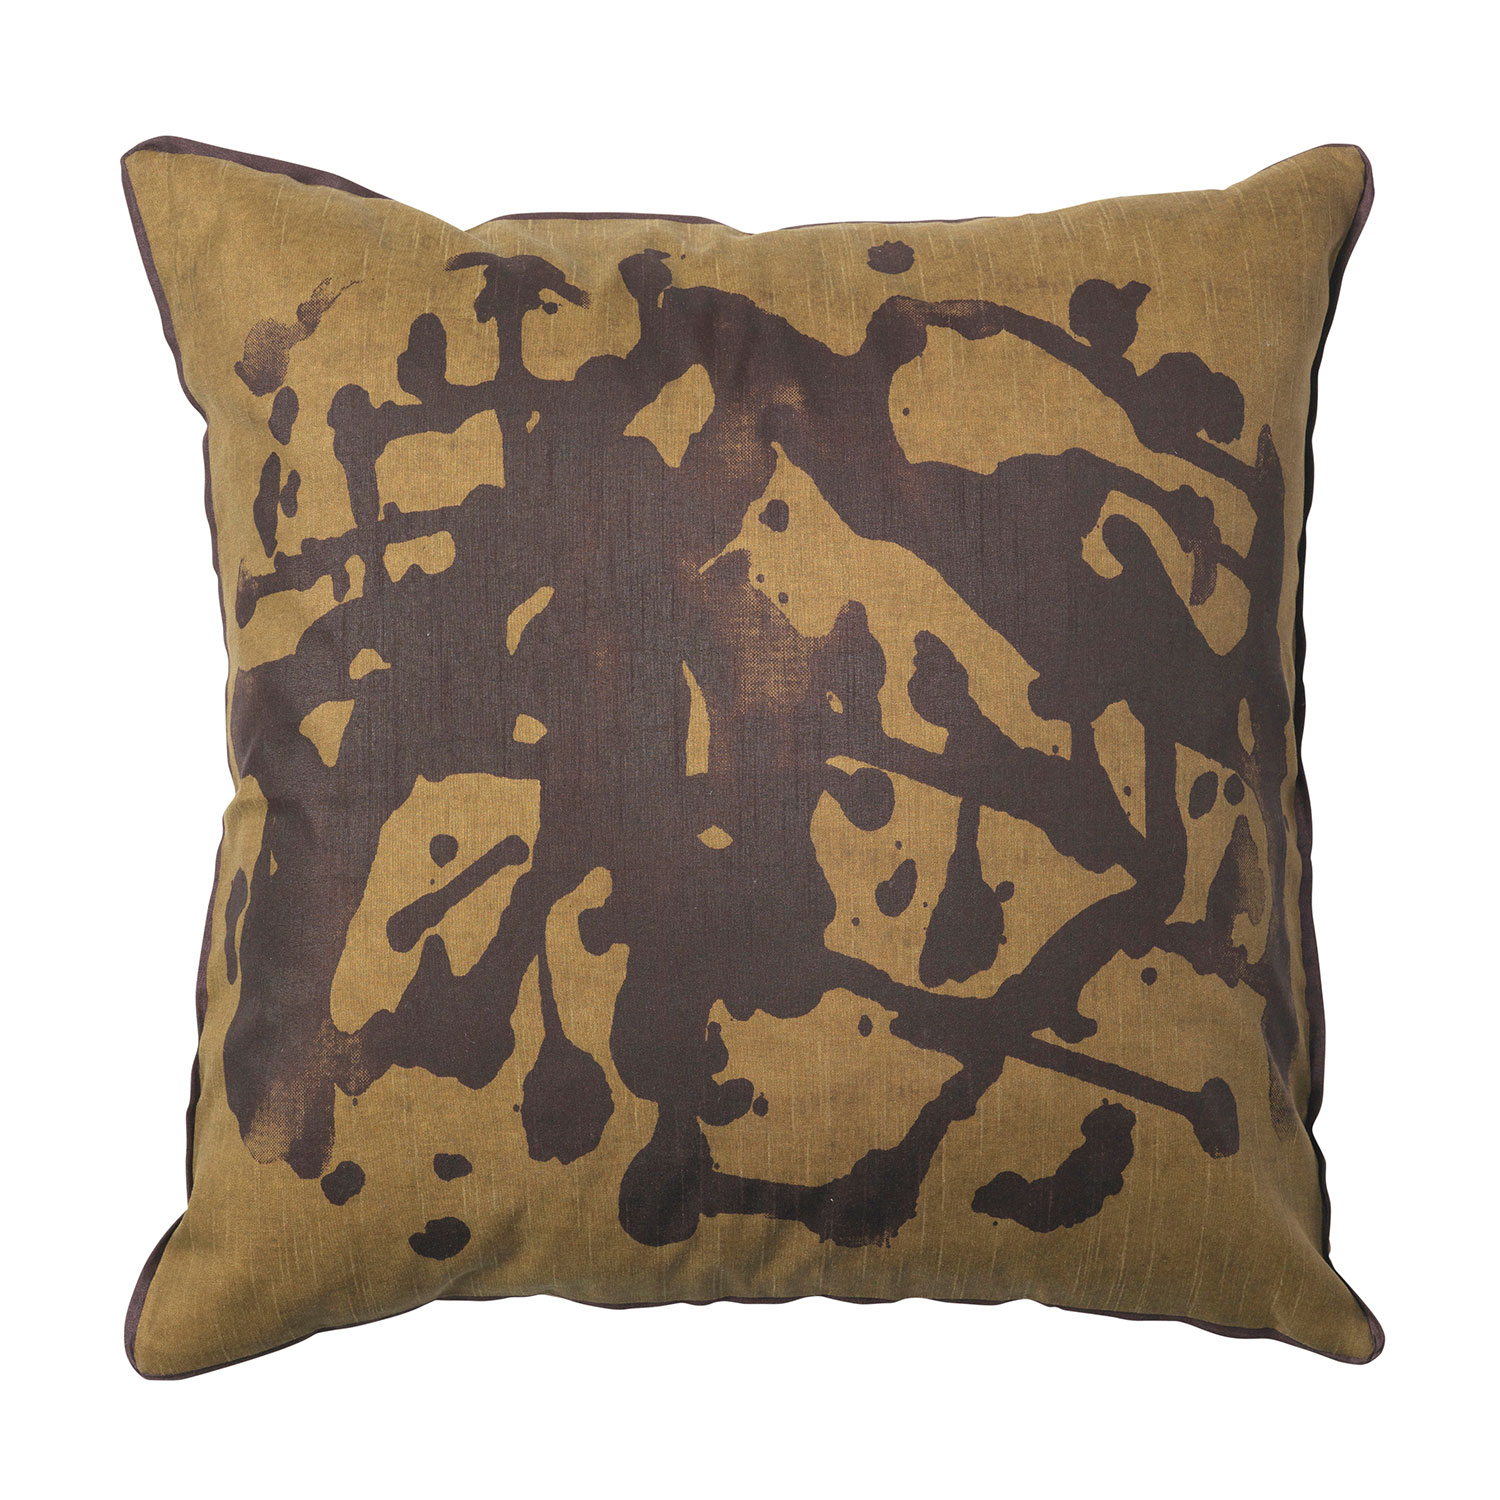 Distressed Cushion Cover 50x50cm, Dull Gold